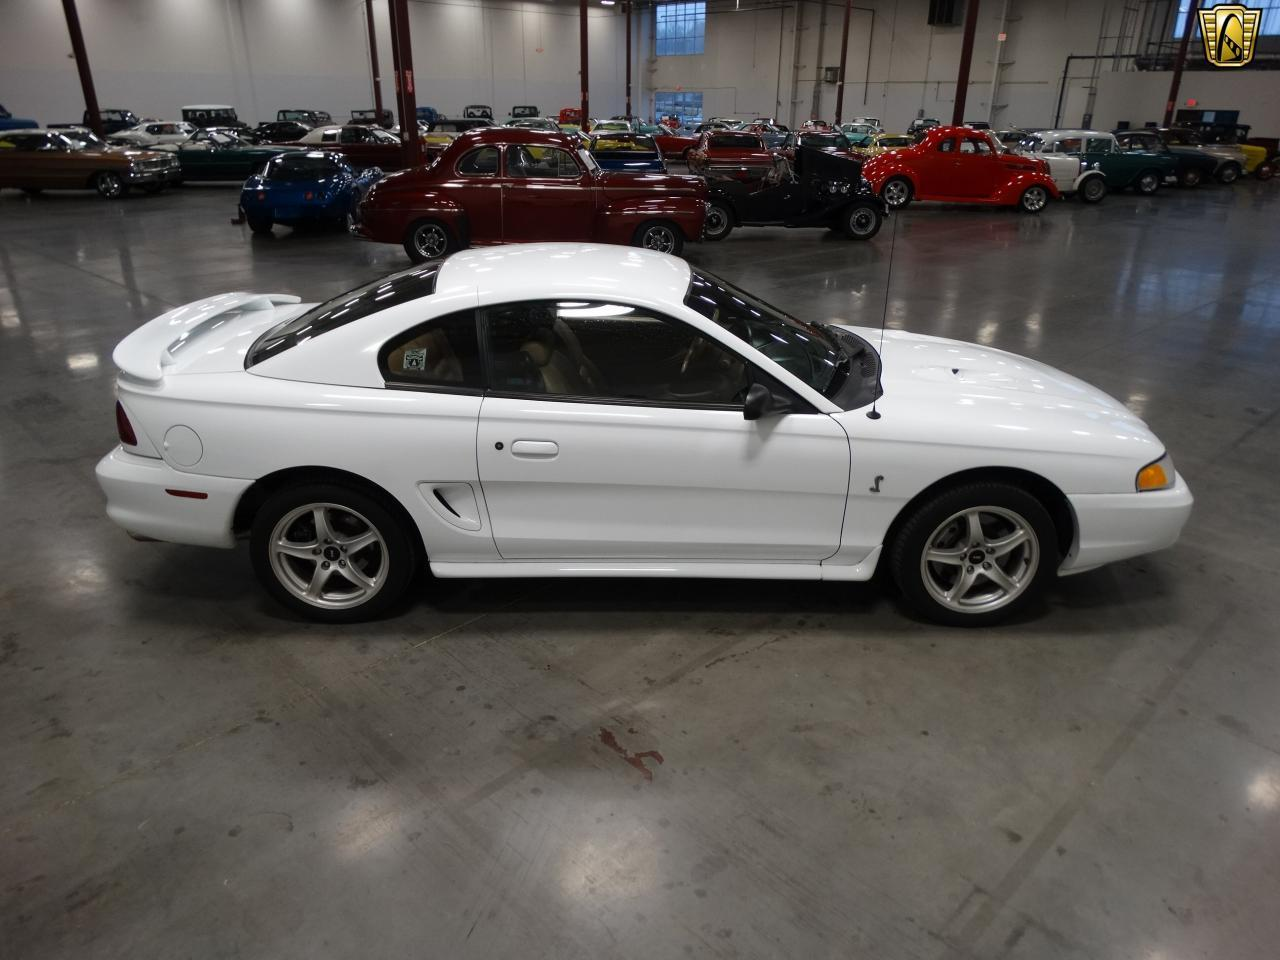 For sale 1998 ford mustang in fairmont city illinois